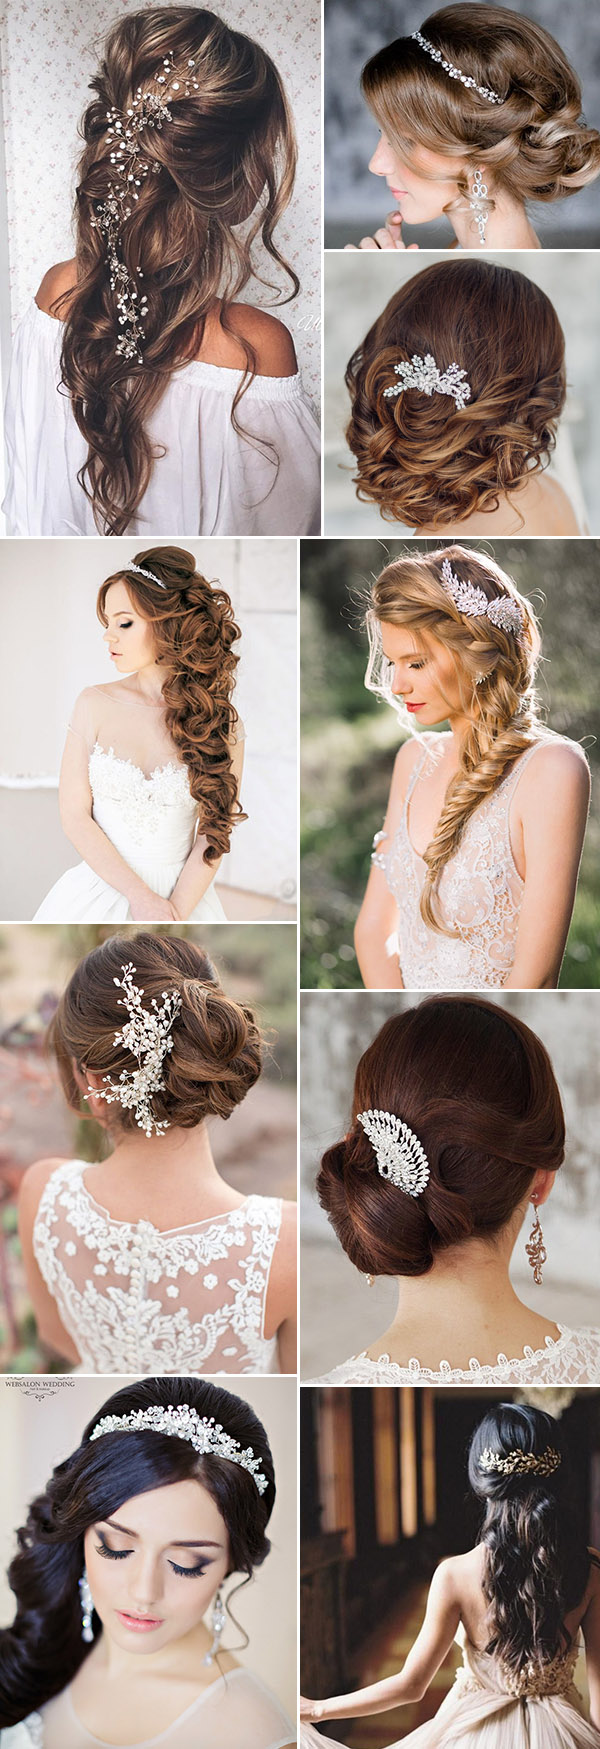 bride hair 2018 – fashion dresses